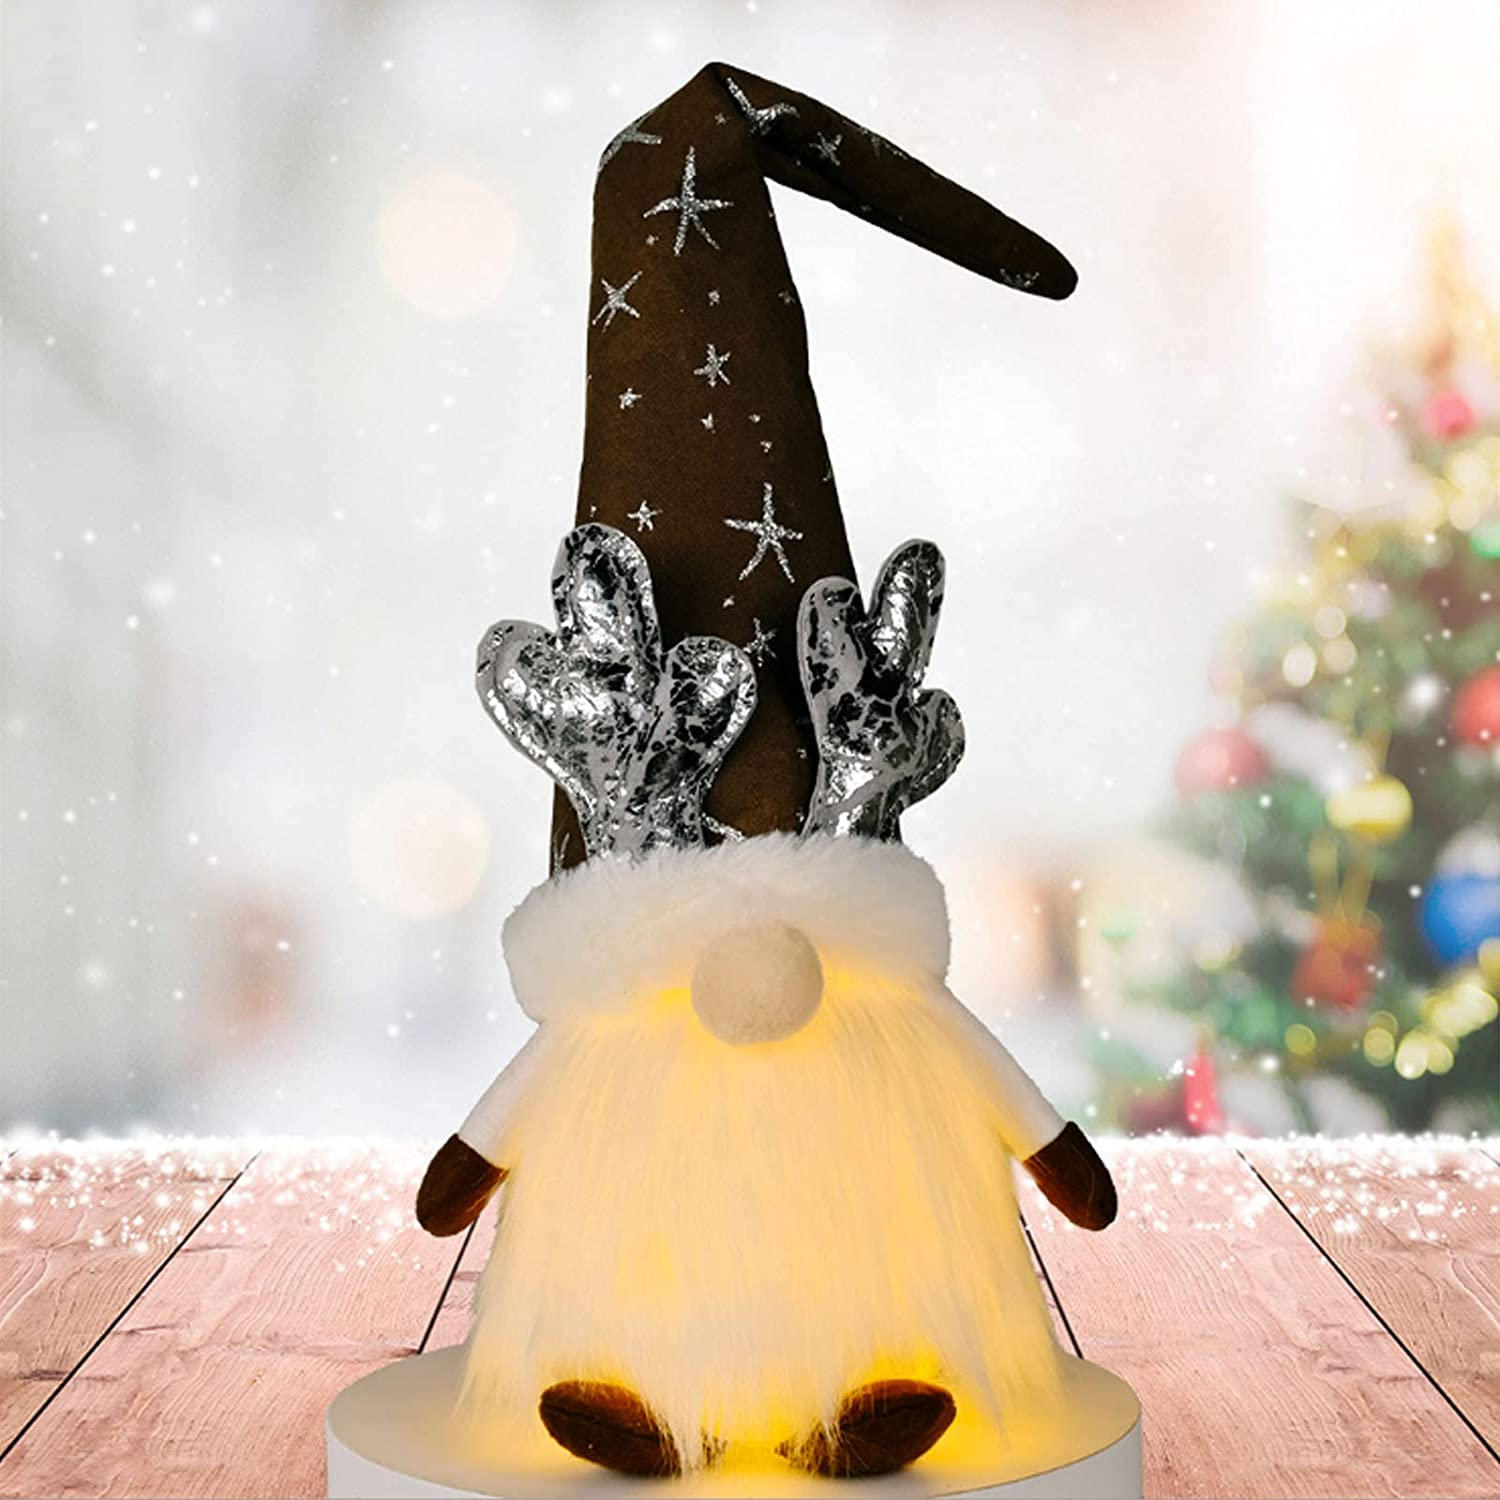 Challenge the lowest Shipping included price of Japan ☆ Christmas Gnome Swedish Decoration Glo Faceless Plush